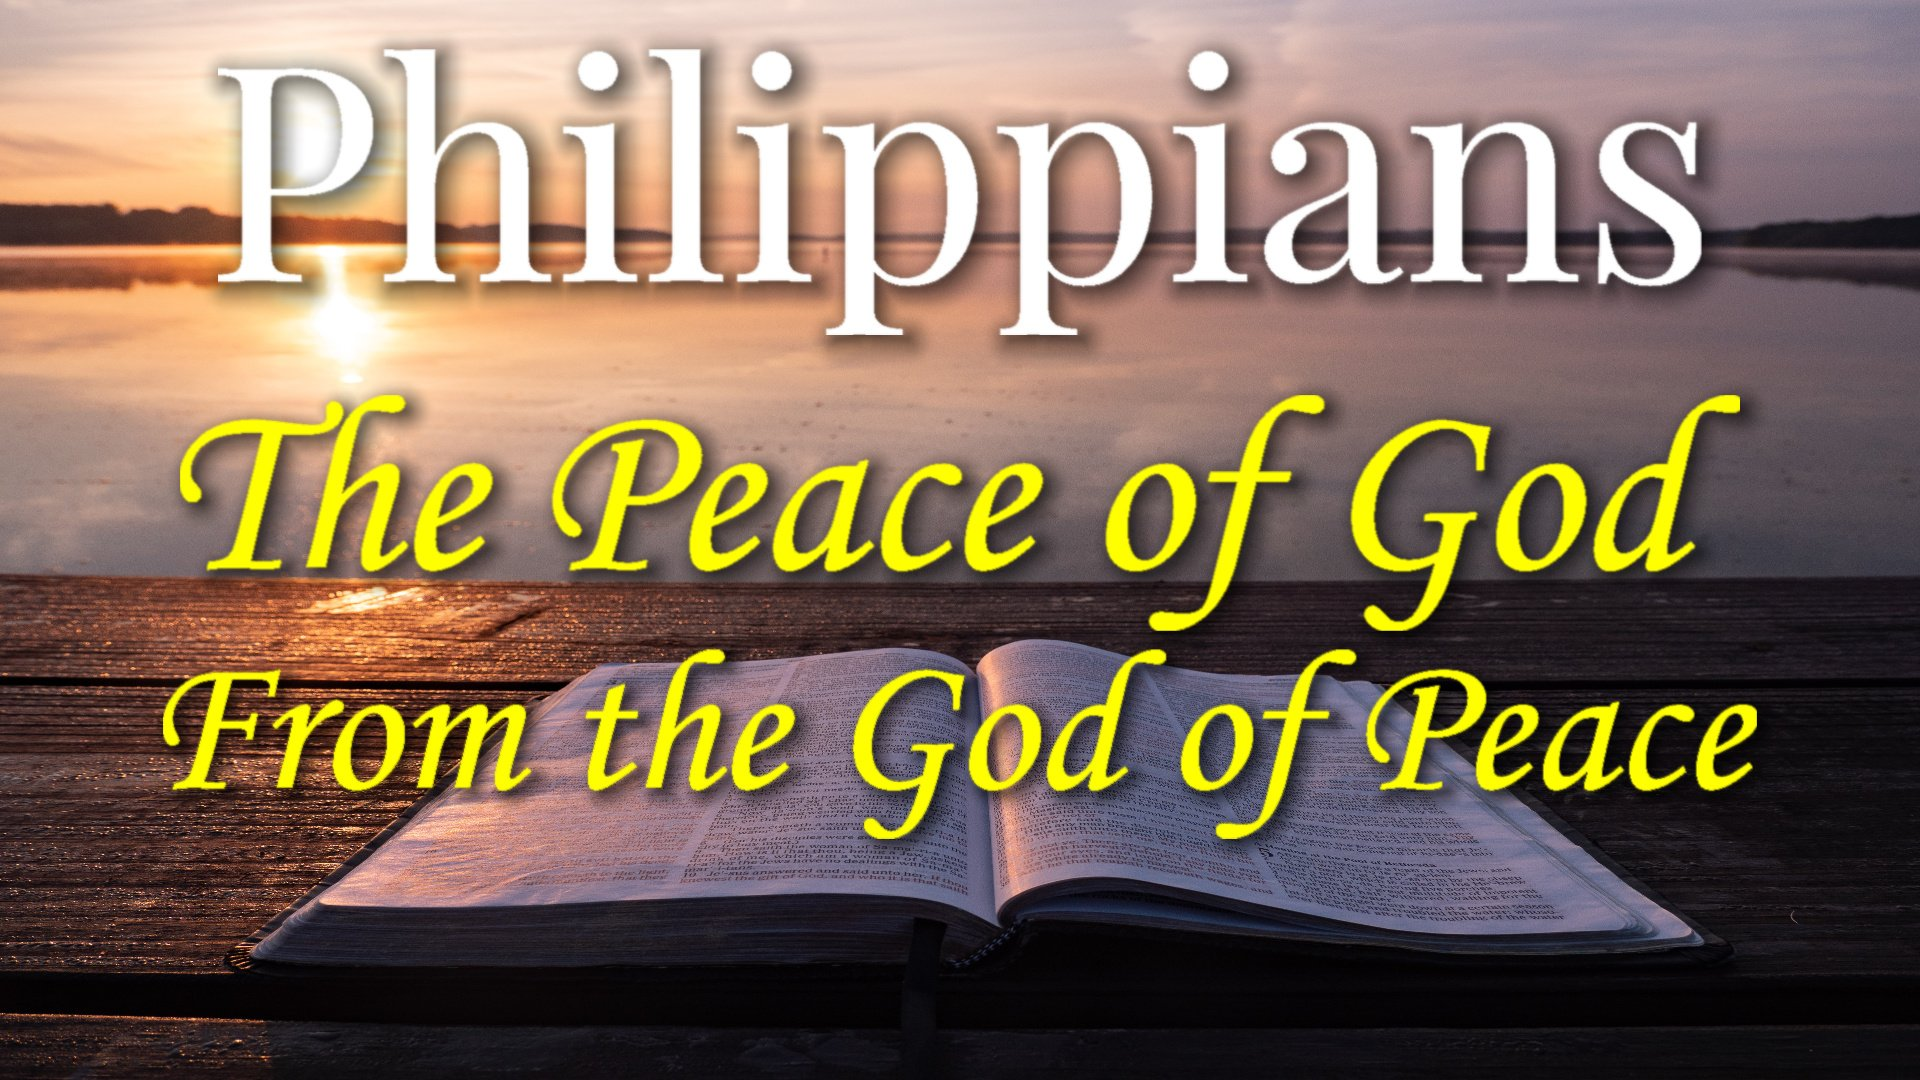 12 The Peace of God From the God of Peace